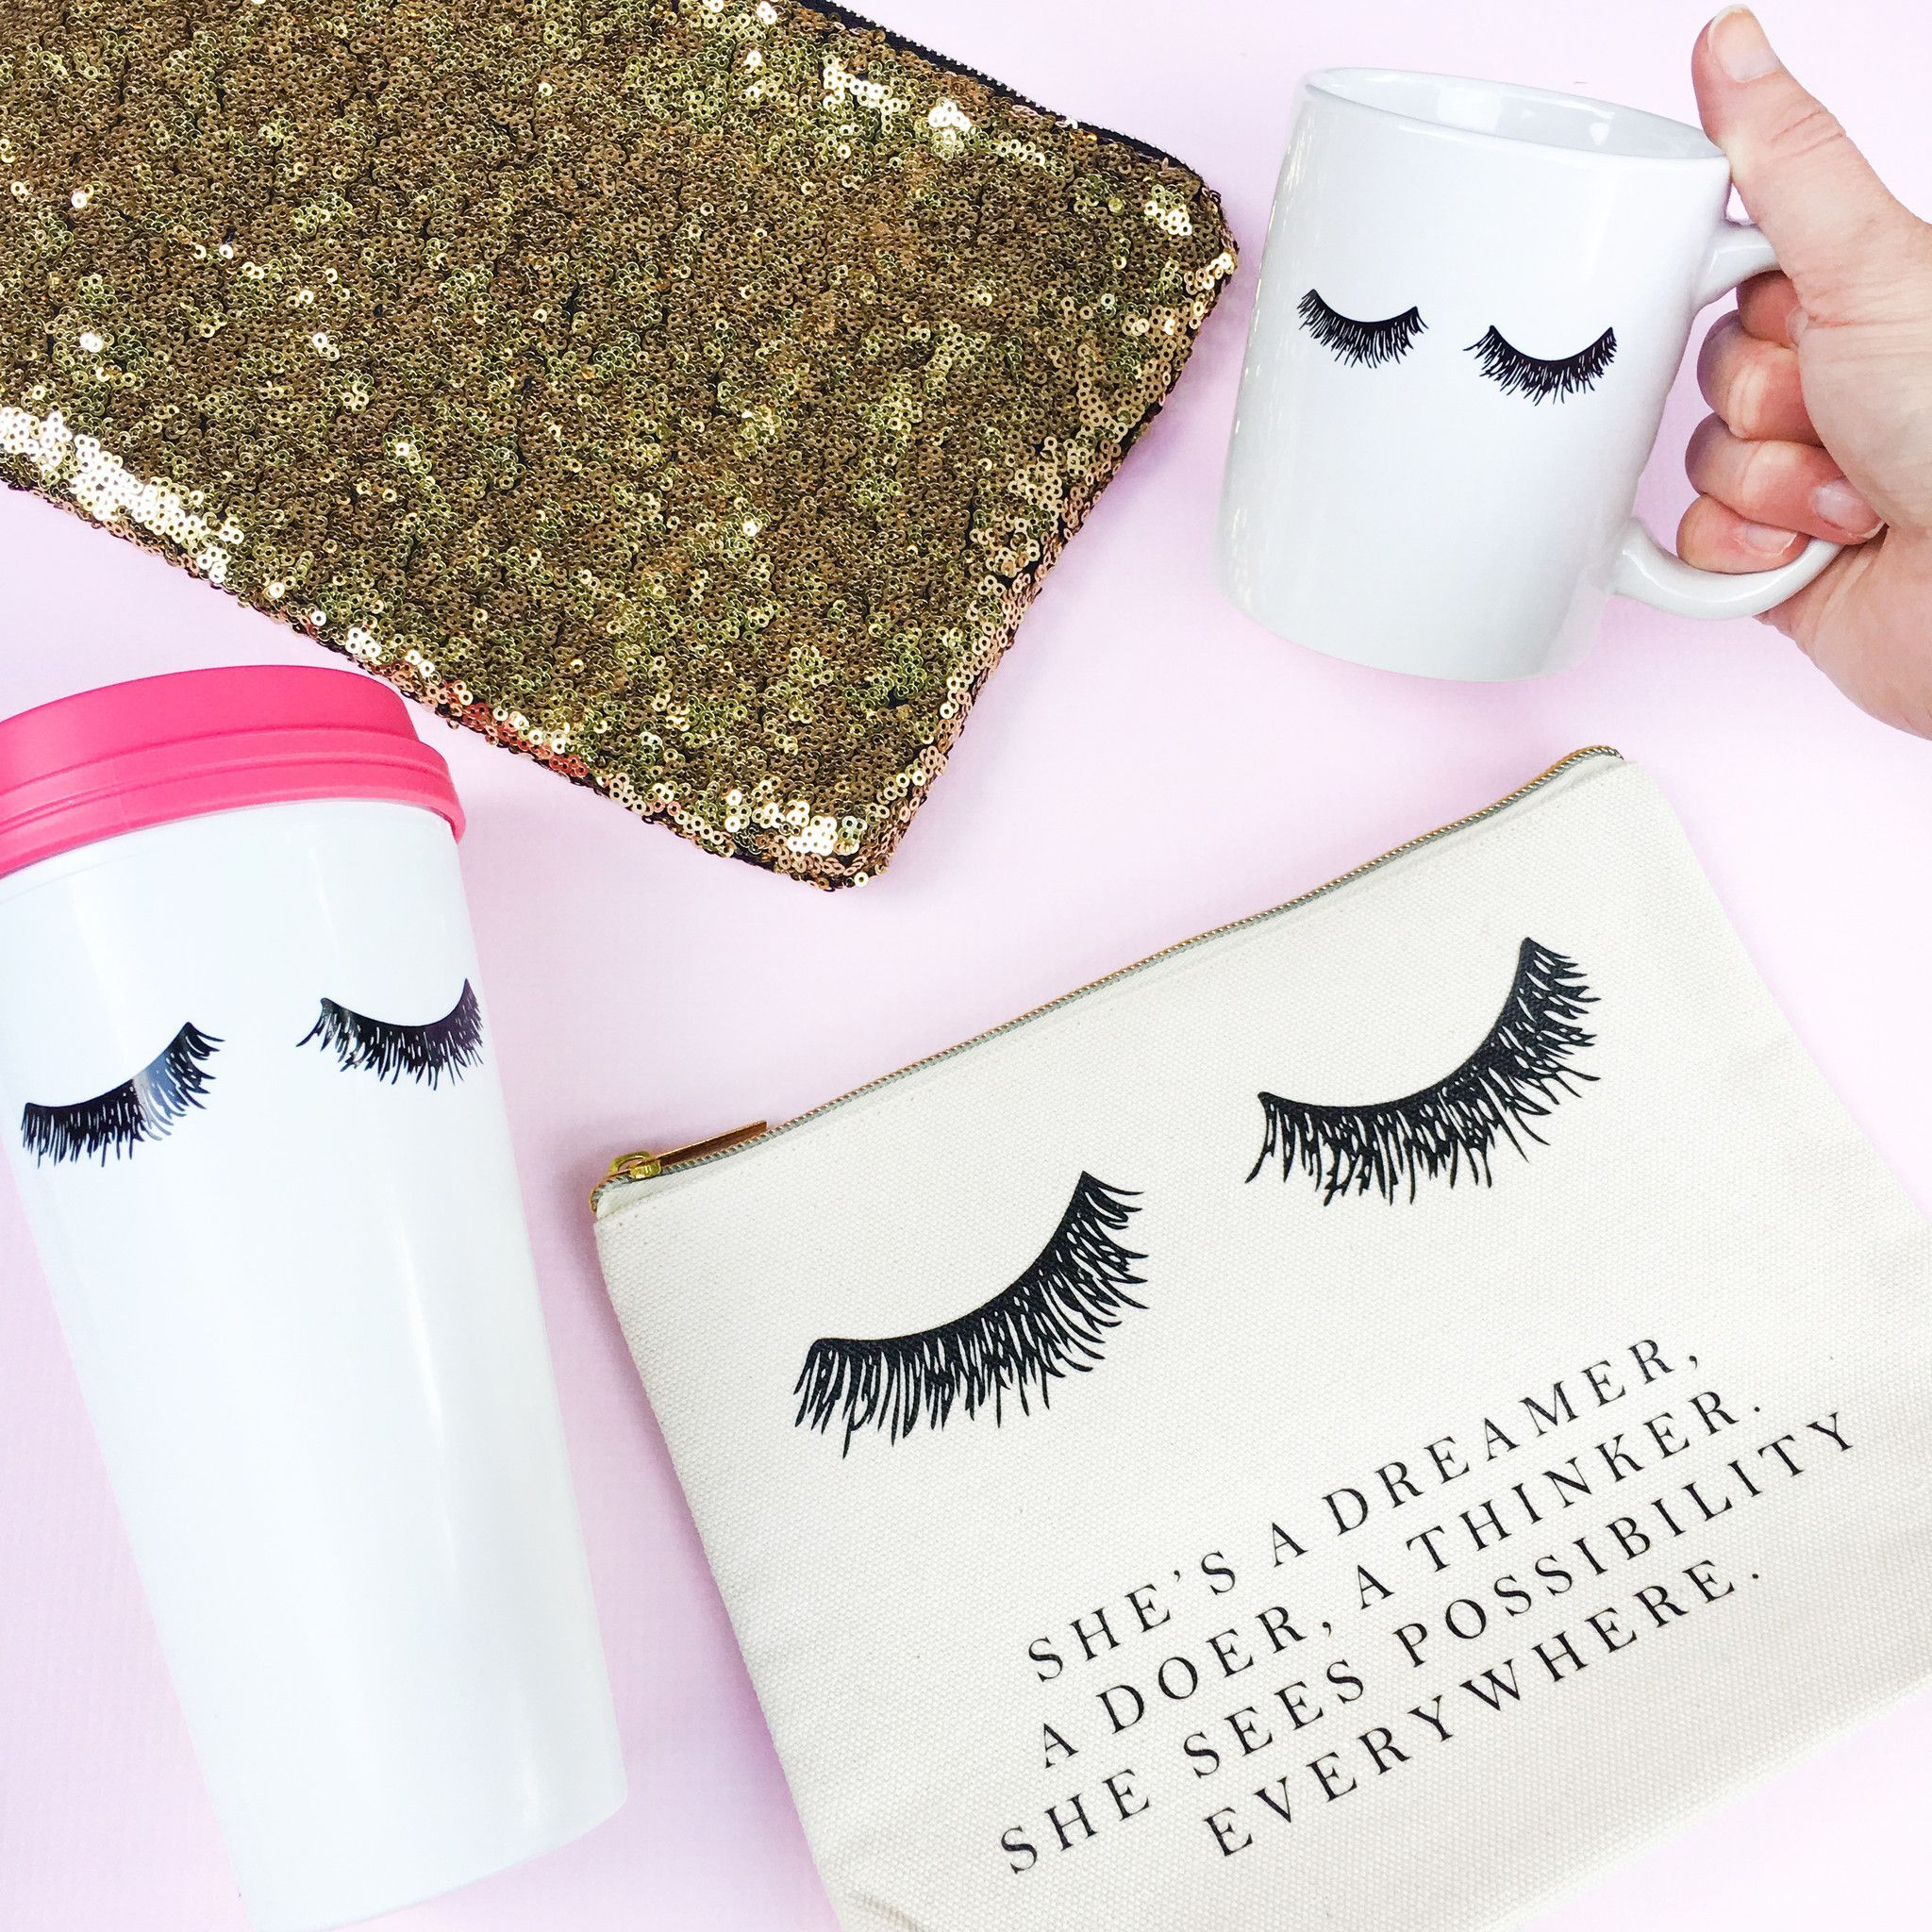 ae122d44745 Add a little glam to your morning routine with our hand-drawn eyelashes  coffee mug